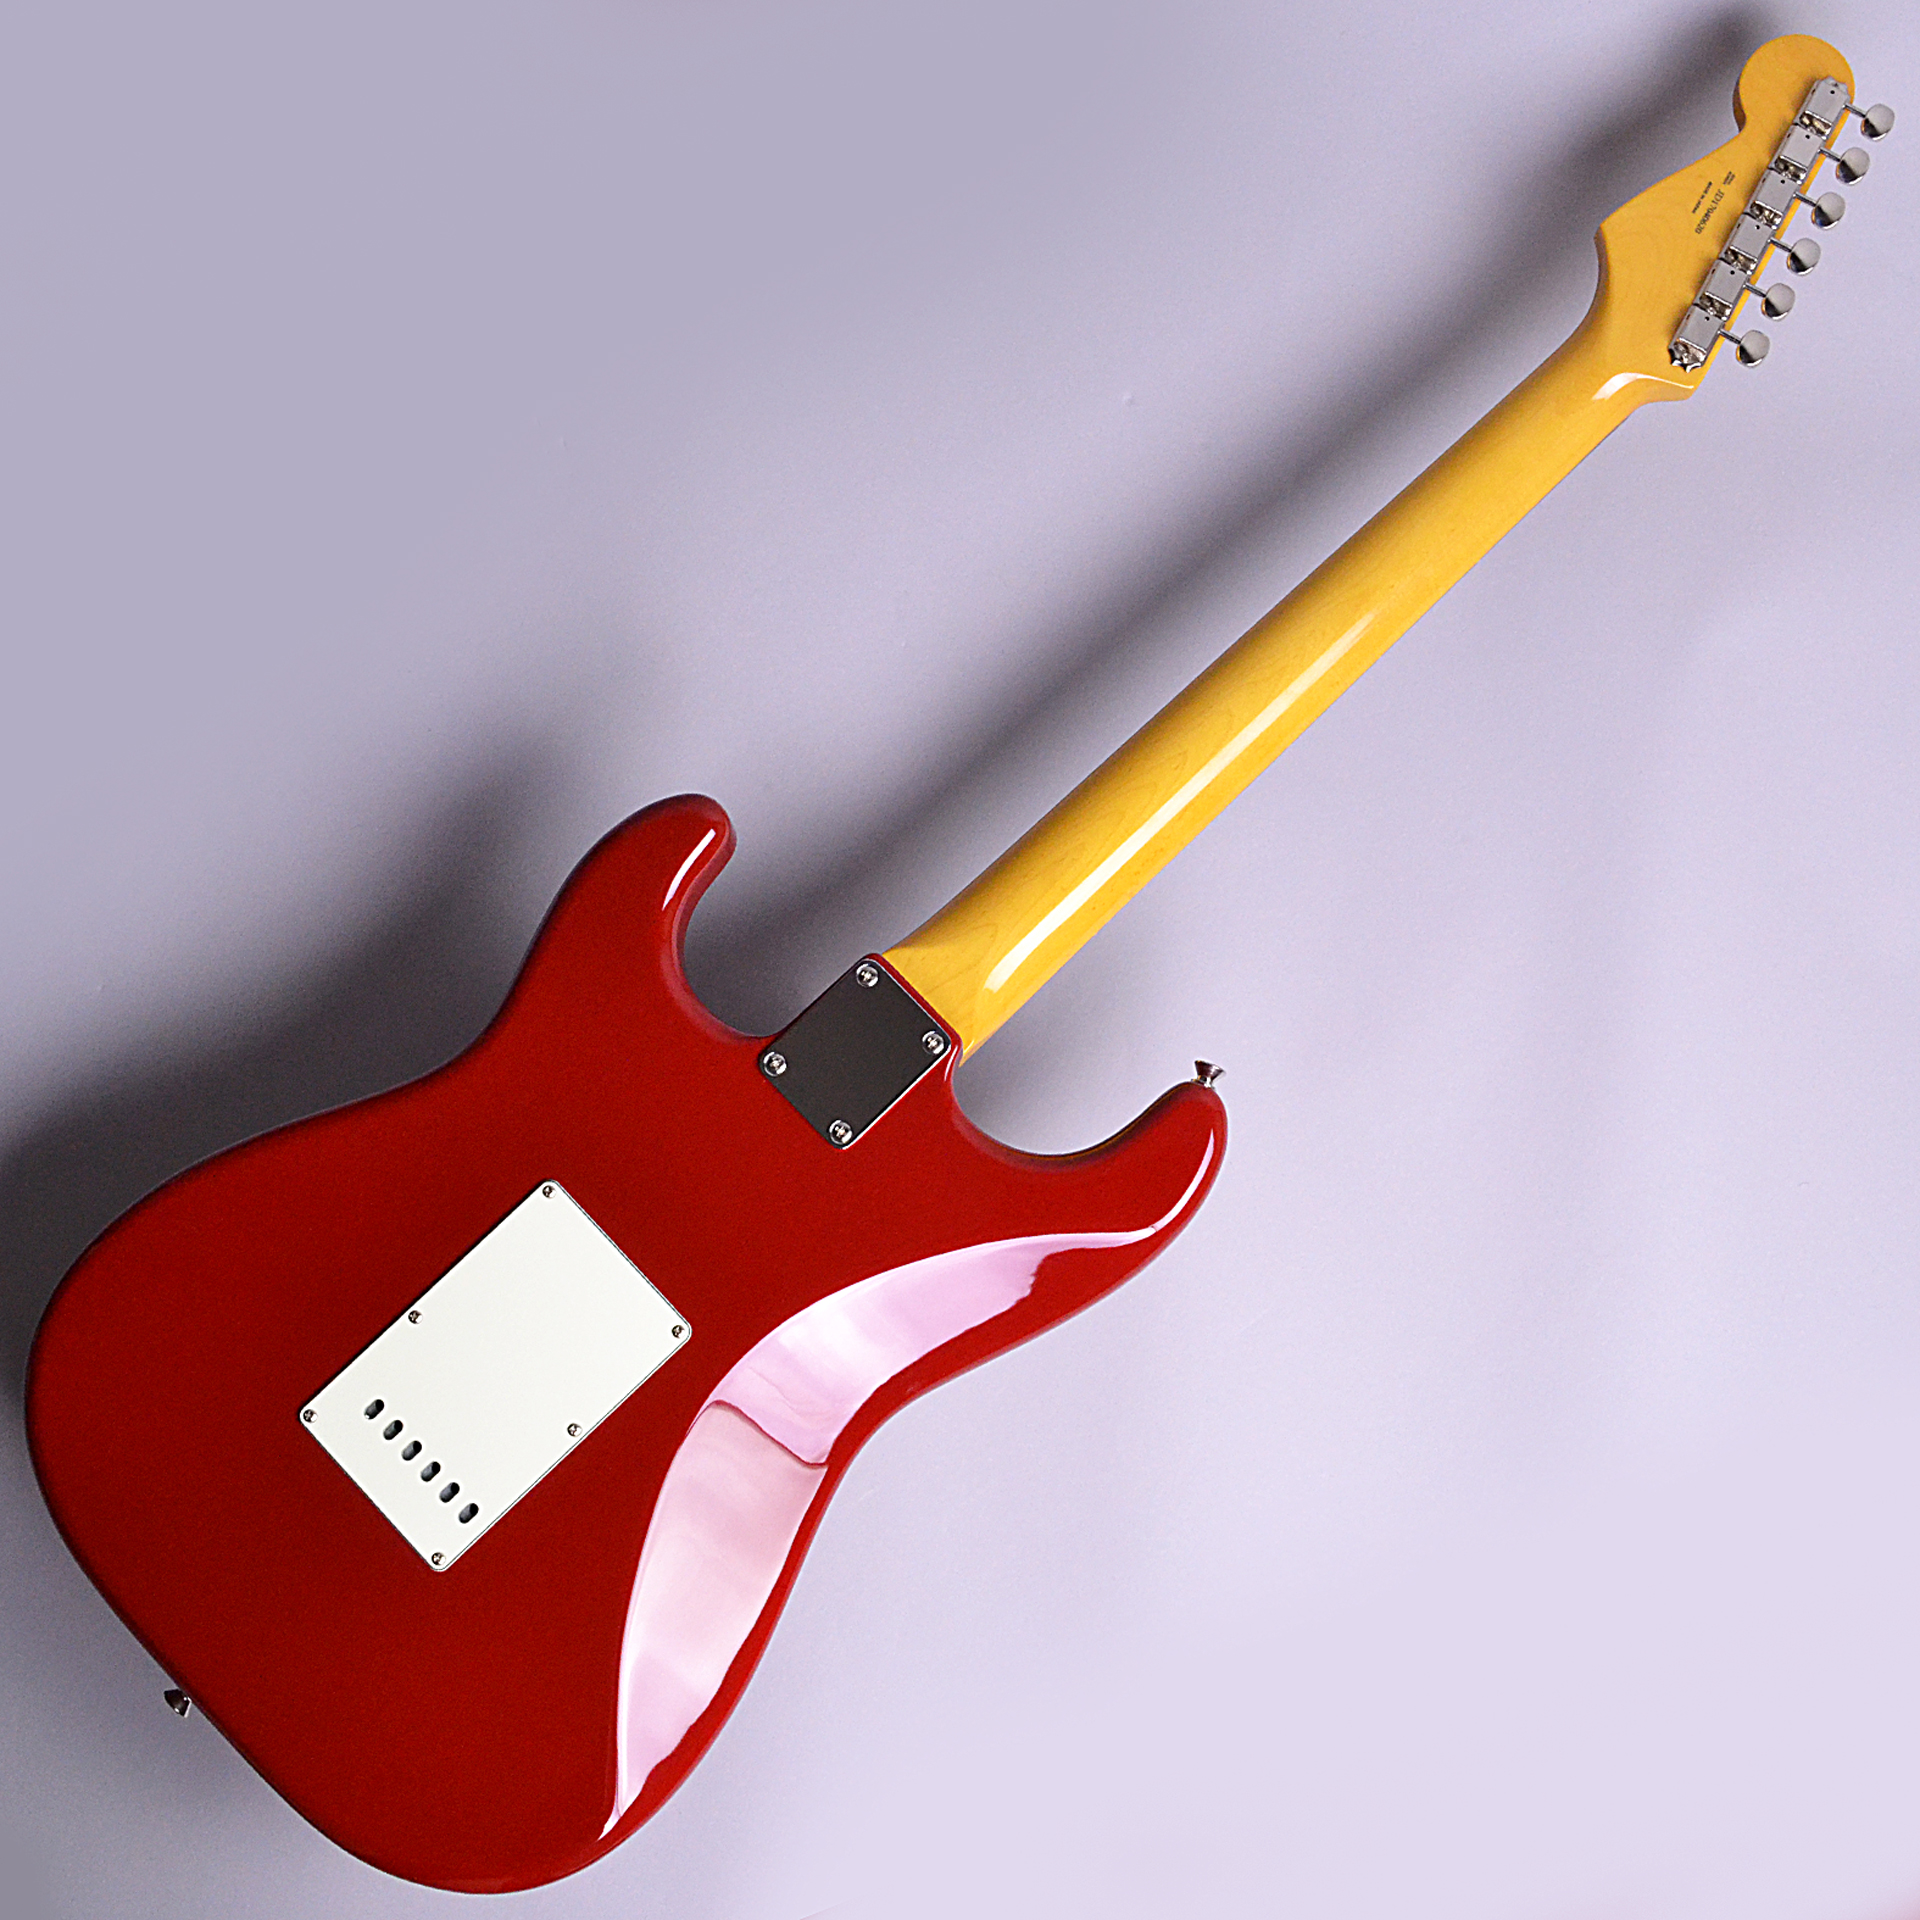 Made in Japan Traditional 60s Stratocasterのボディバック-アップ画像